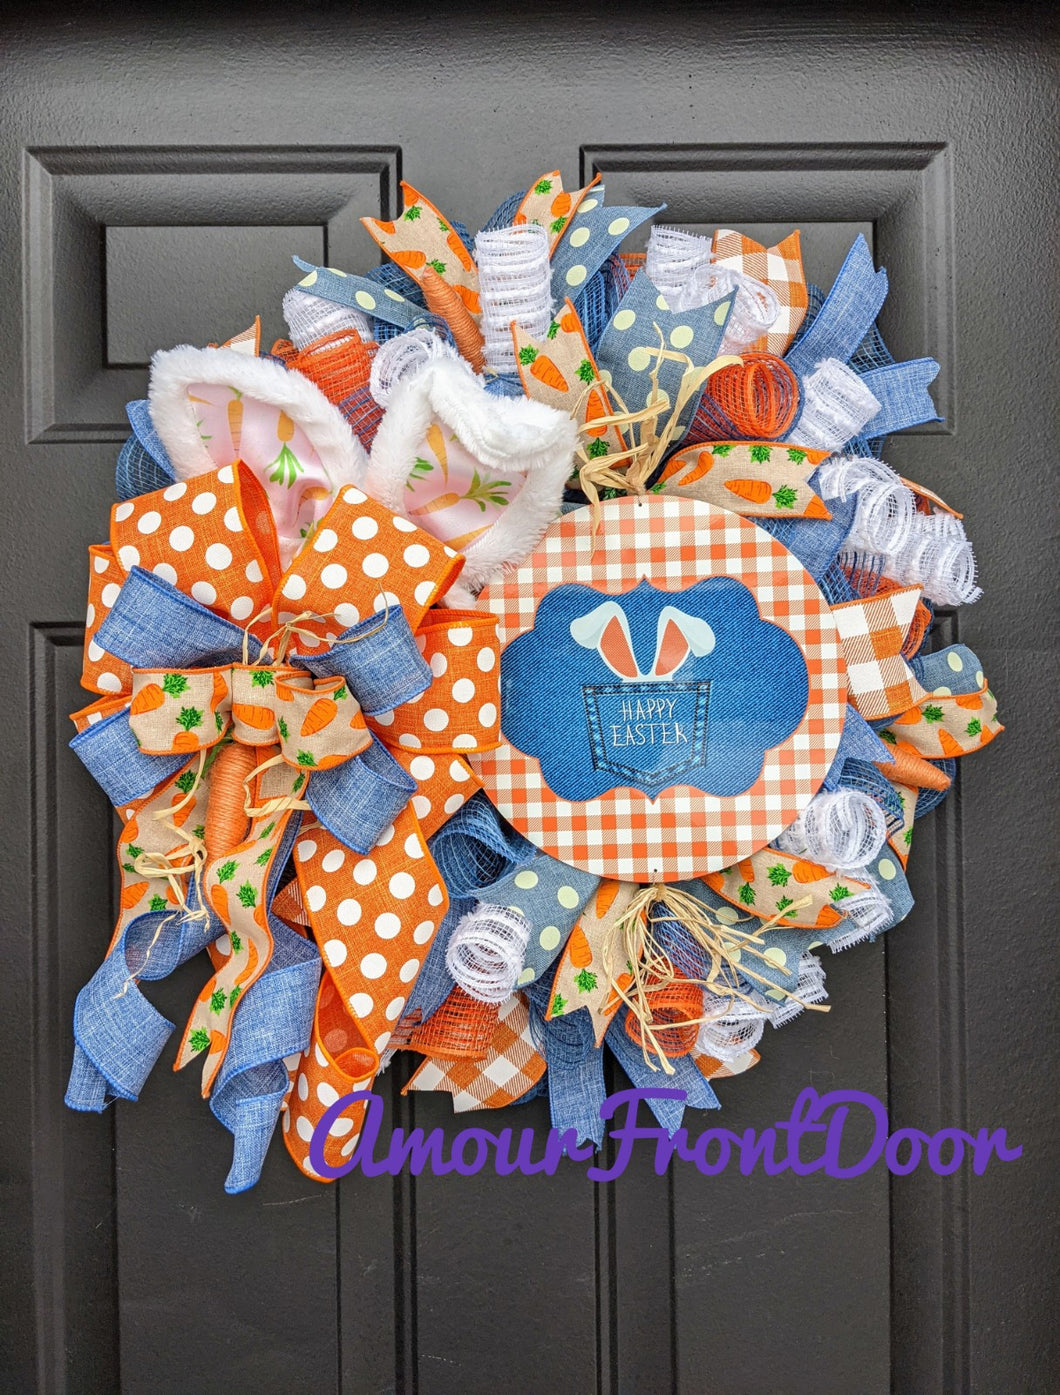 Happy Easter Wreath, Easter Bunny Wreath, Easter Rabbit Wreath, Easter Carrot Wreath, Easter Farmhouse Wreath